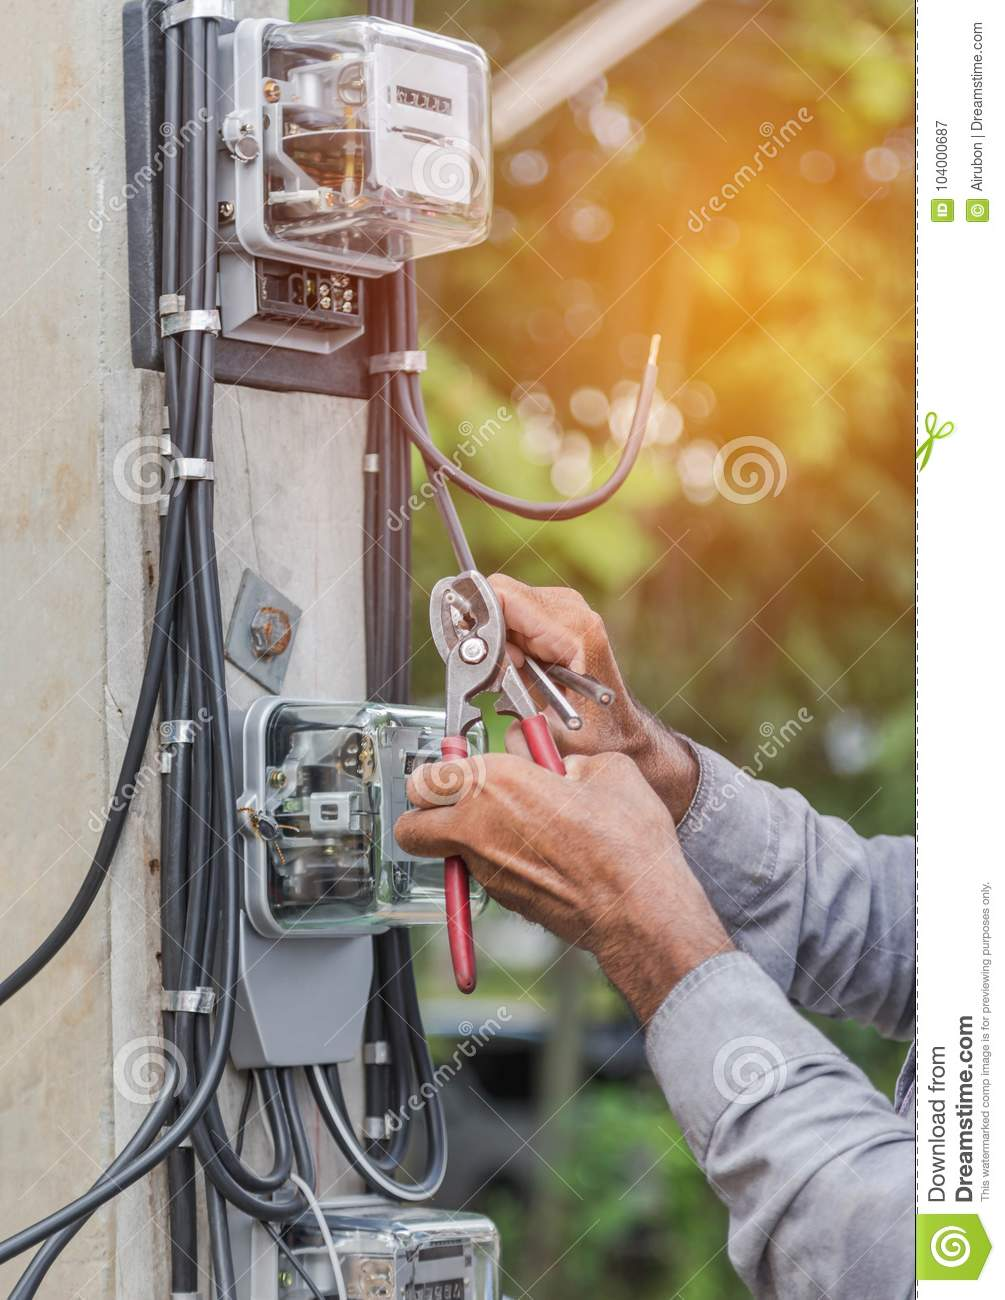 Electrician Installing Electric Meter For Measuring Power Into Fuse Board Line Distribution Fuseboard